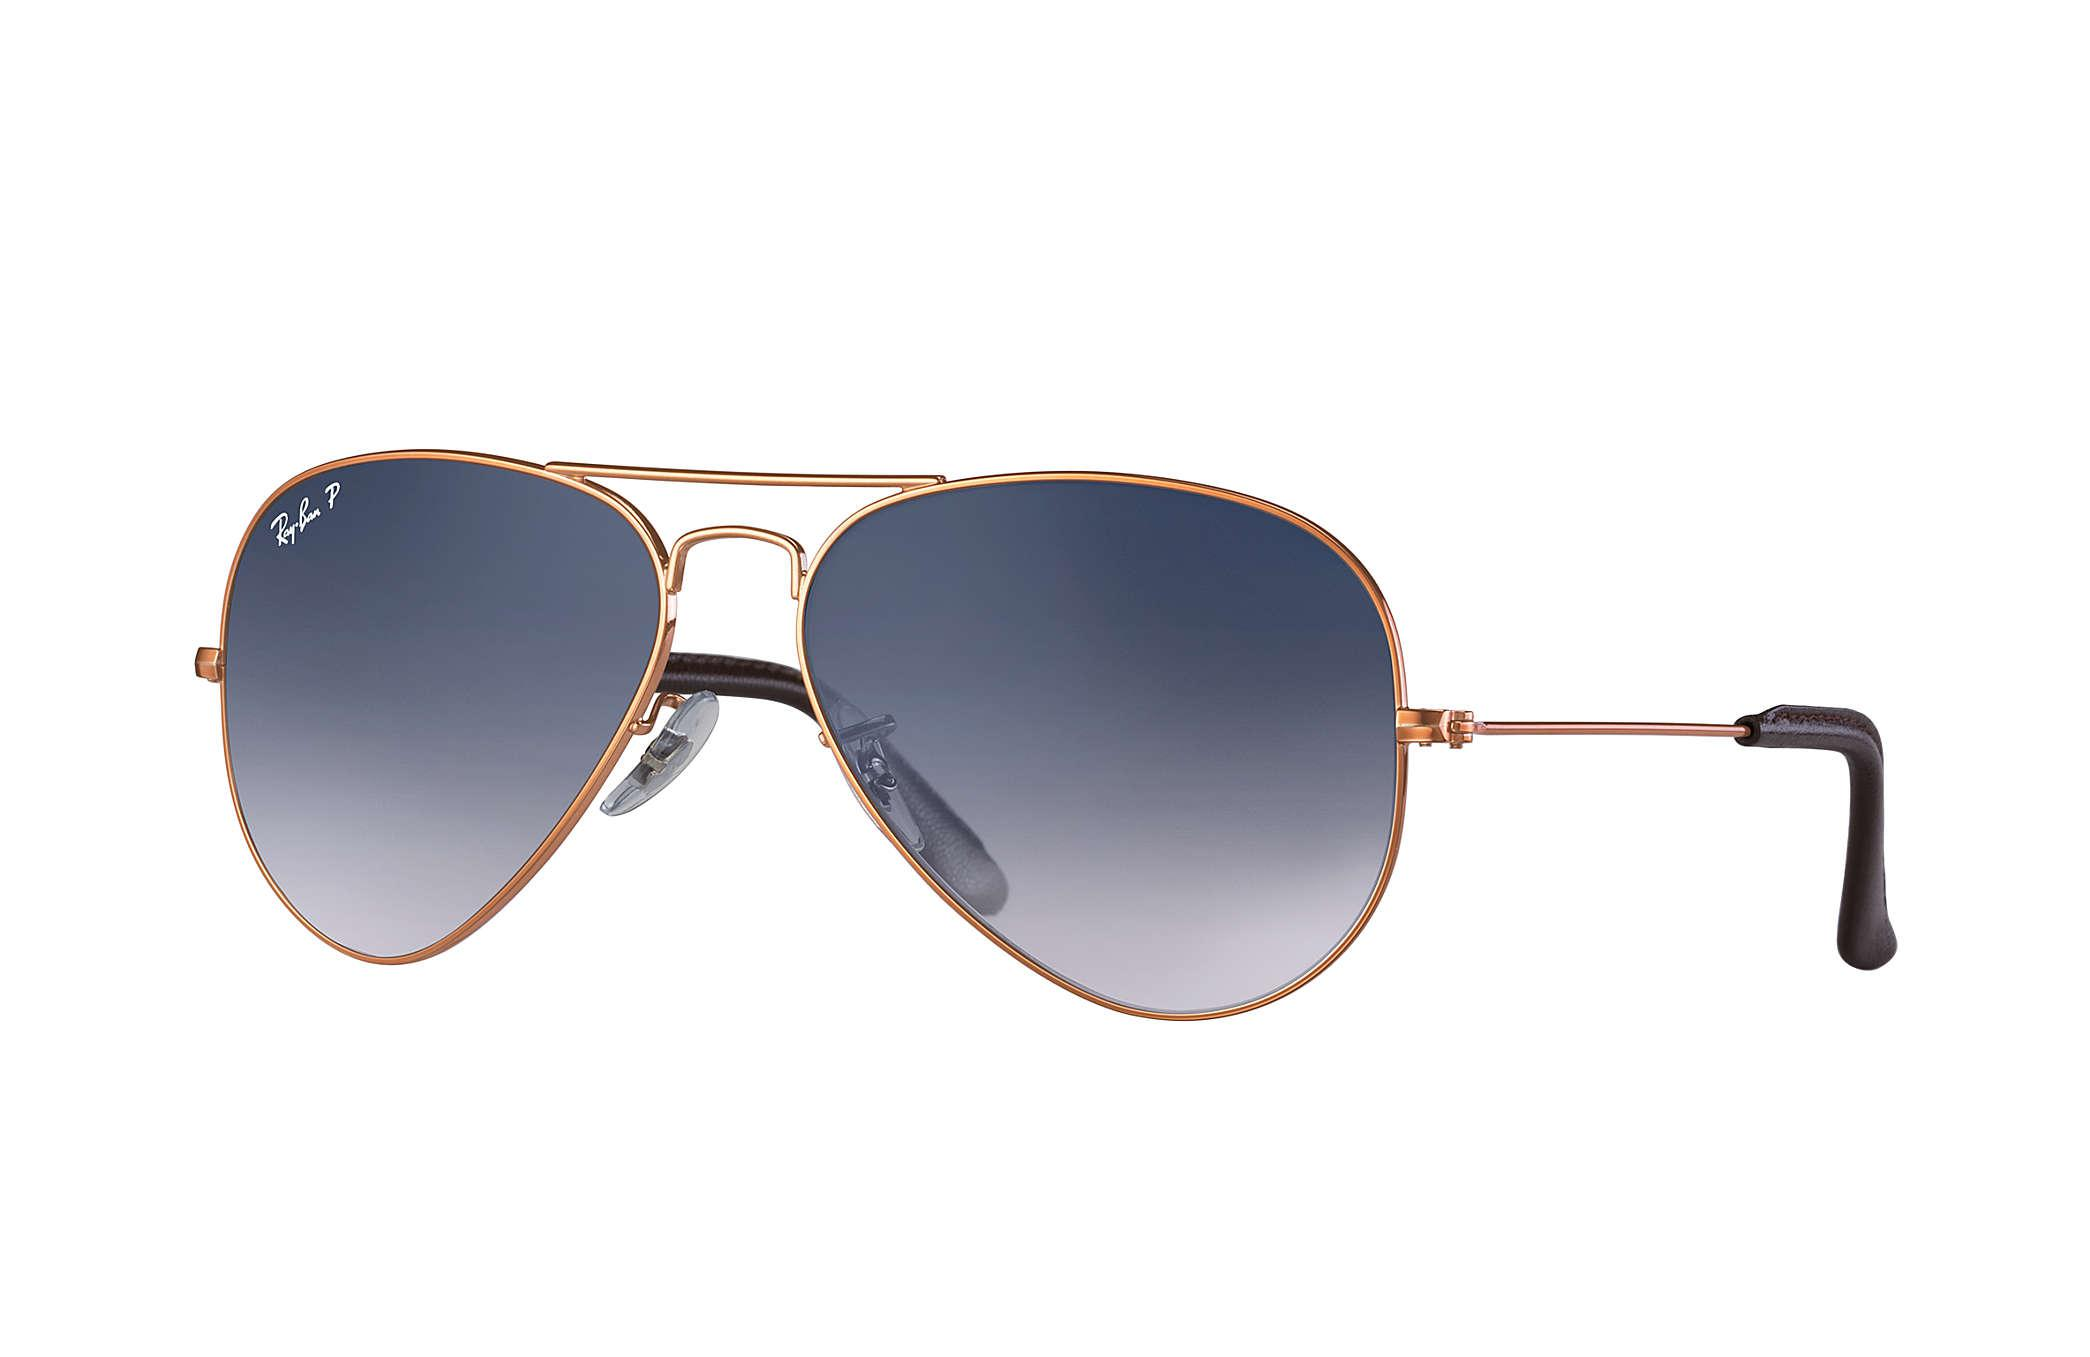 875fea88ead Lyst - Ray-Ban Aviator  collection in Gray